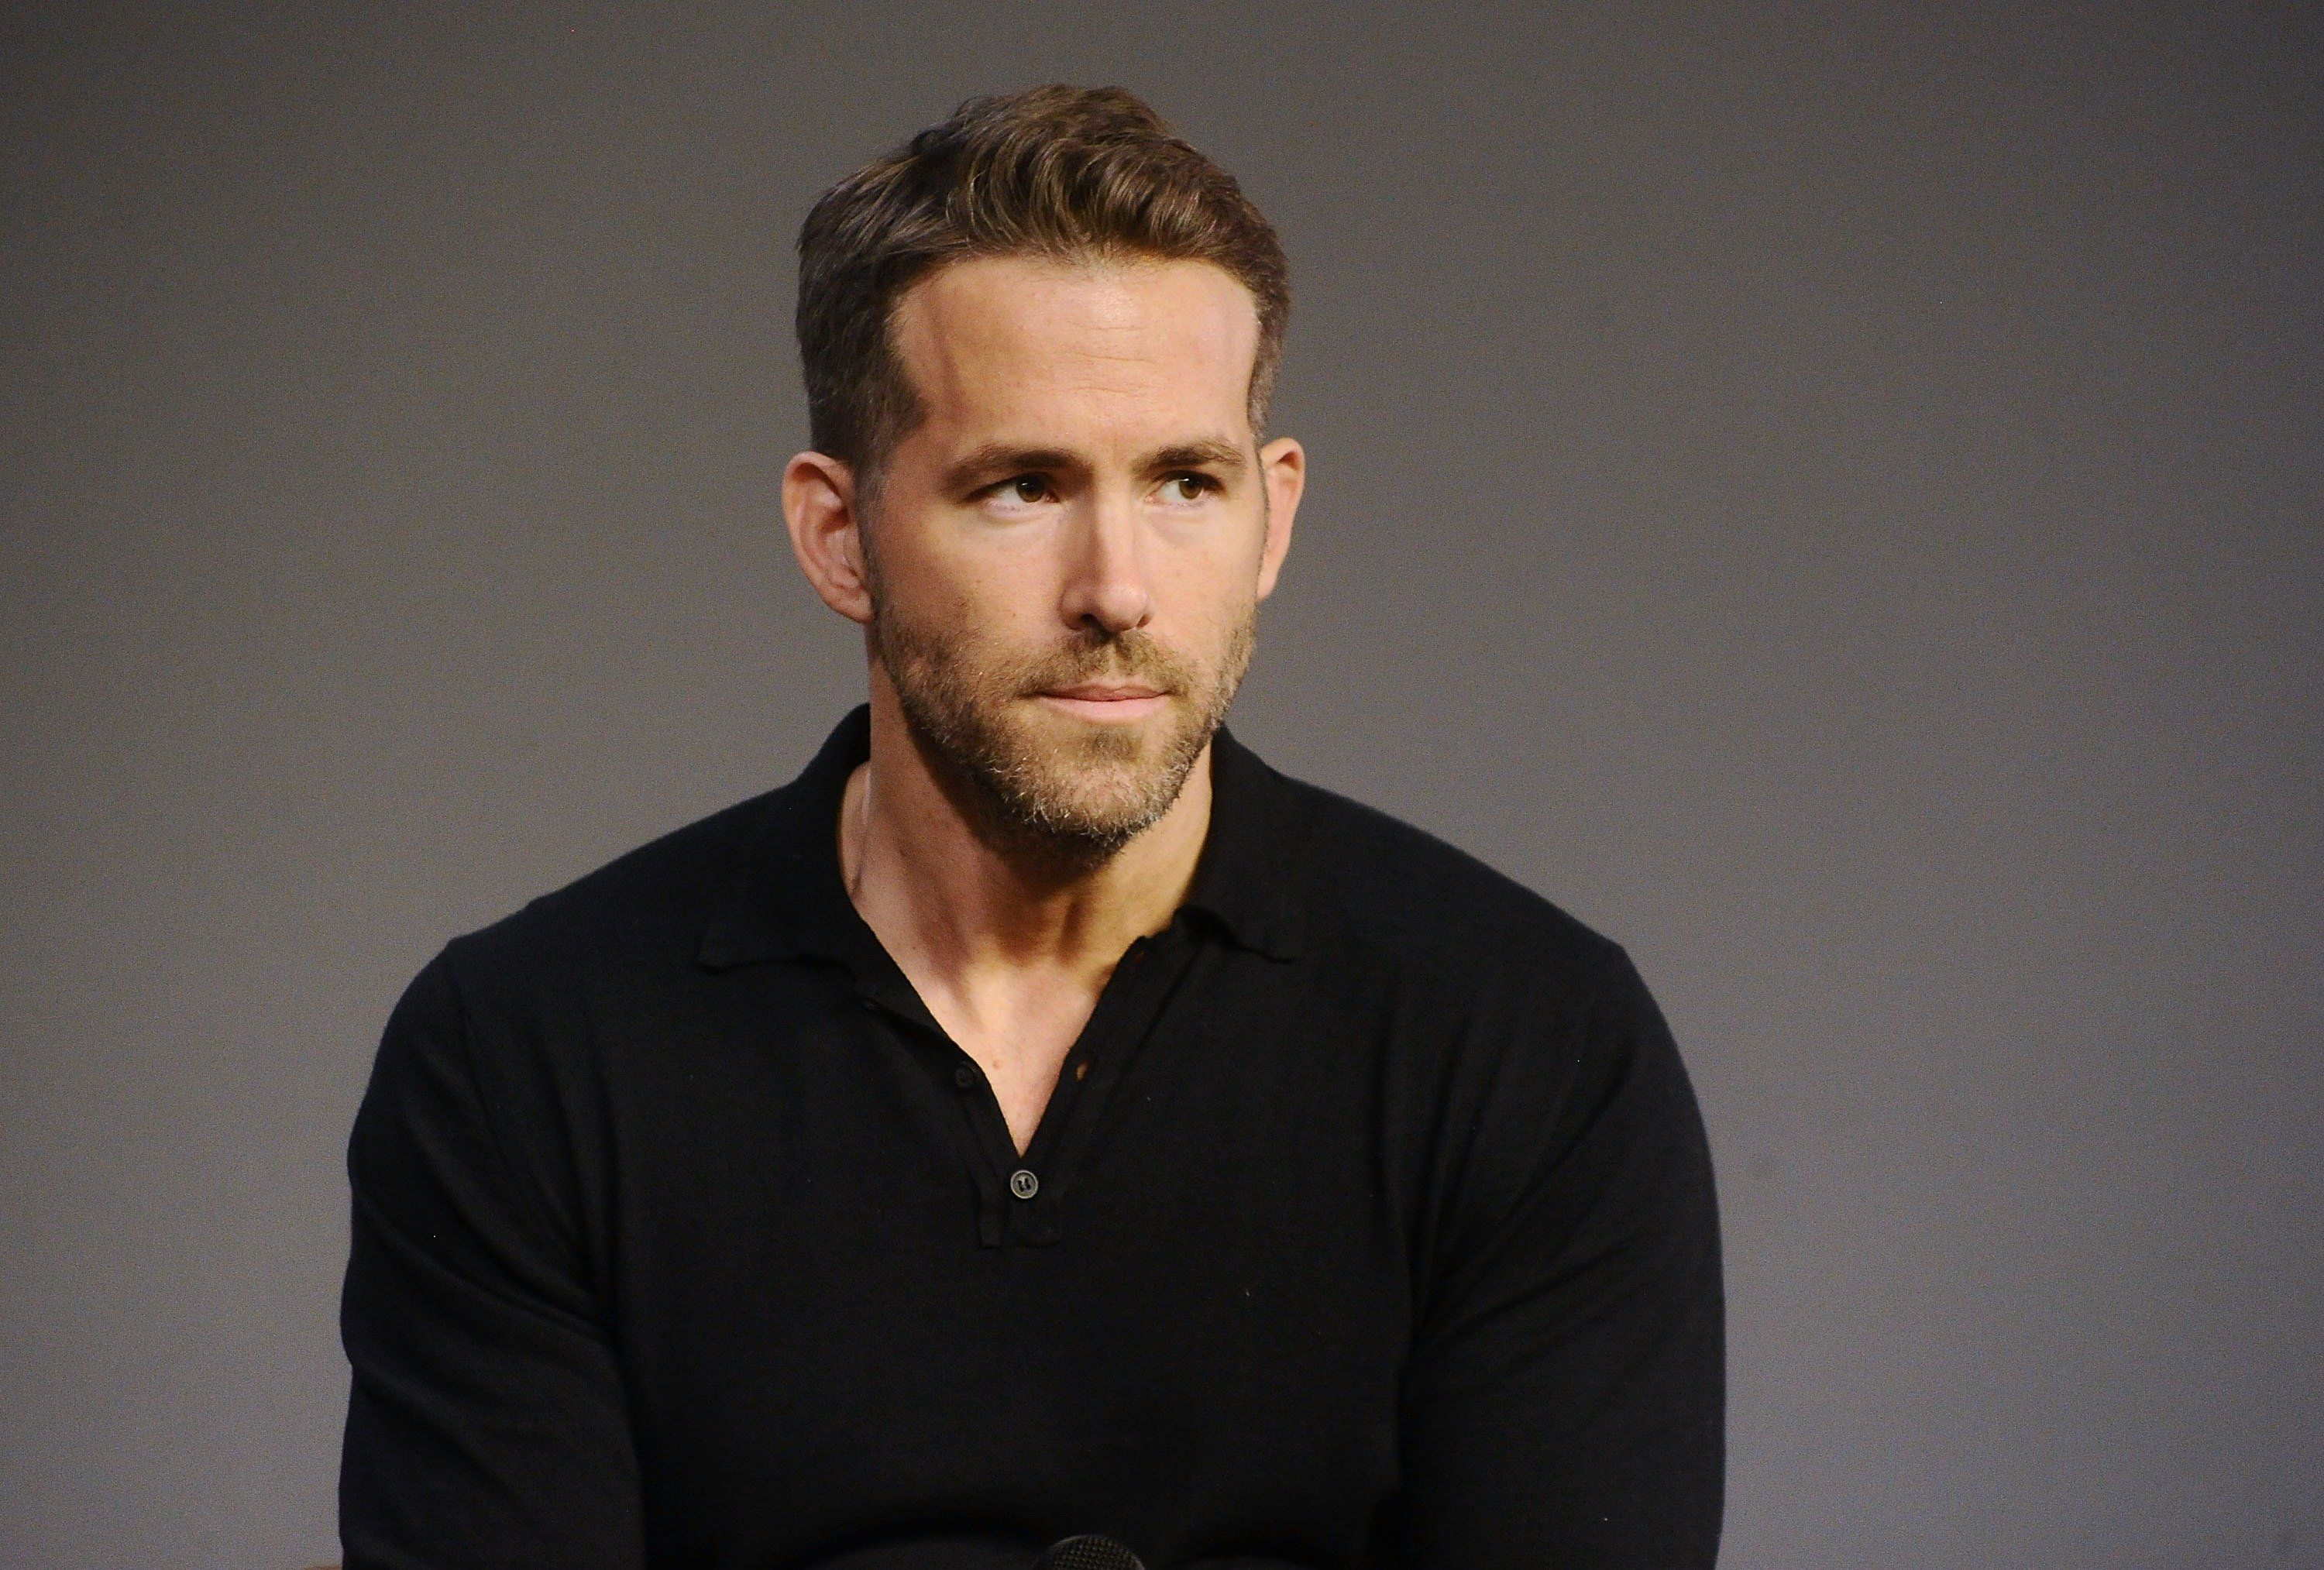 NEW YORK, NY - SEPTEMBER 21:  Actor Ryan Reynolds discusses his new film 'Mississippi Grind' at Apple Store Soho on September 21, 2015 in New York City.  (Photo by Daniel Zuchnik/WireImage)